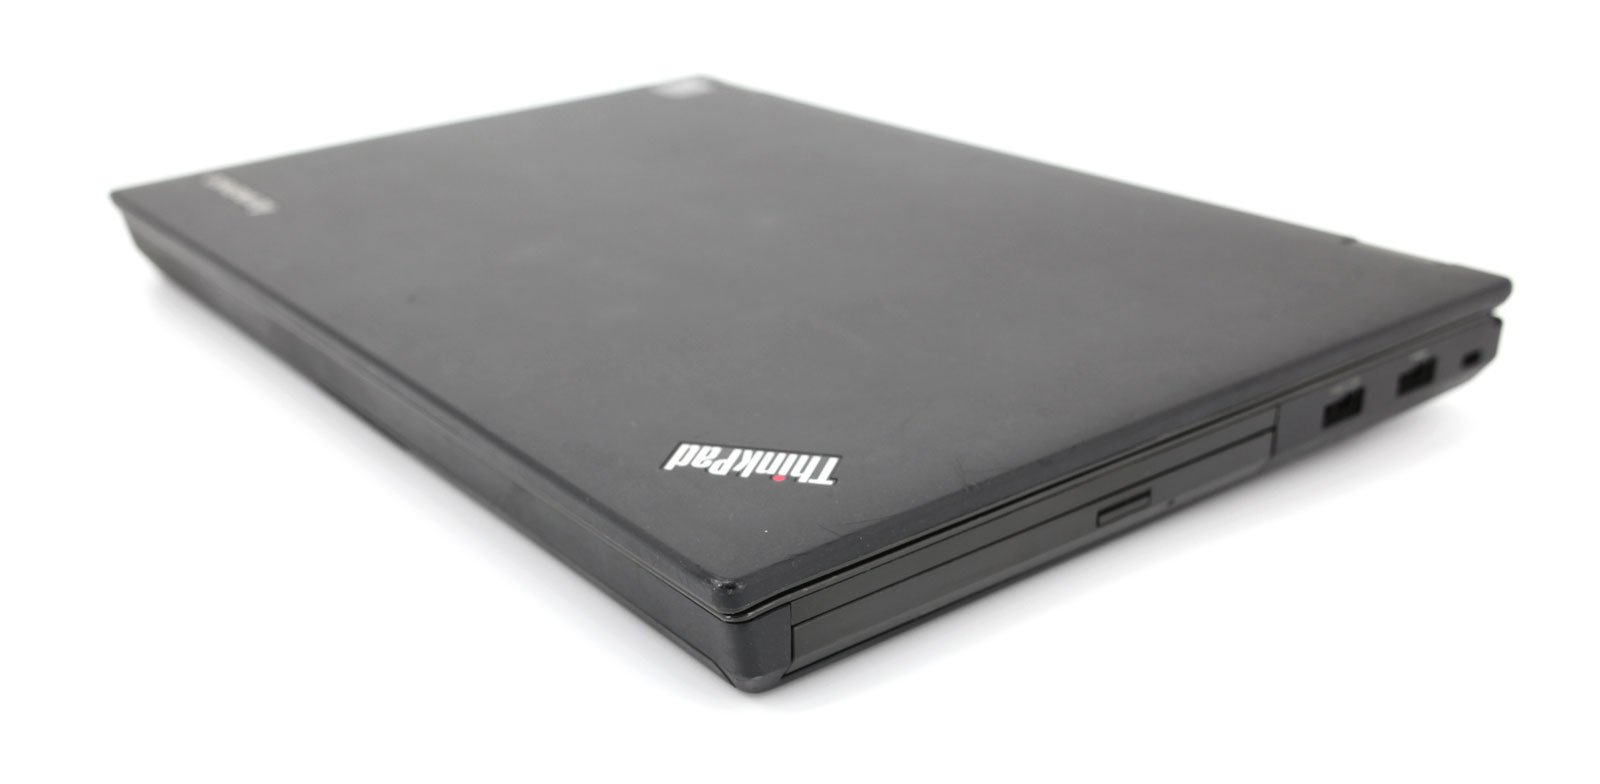 Lenovo ThinkPad T440P Laptop: i5-4300M, 14